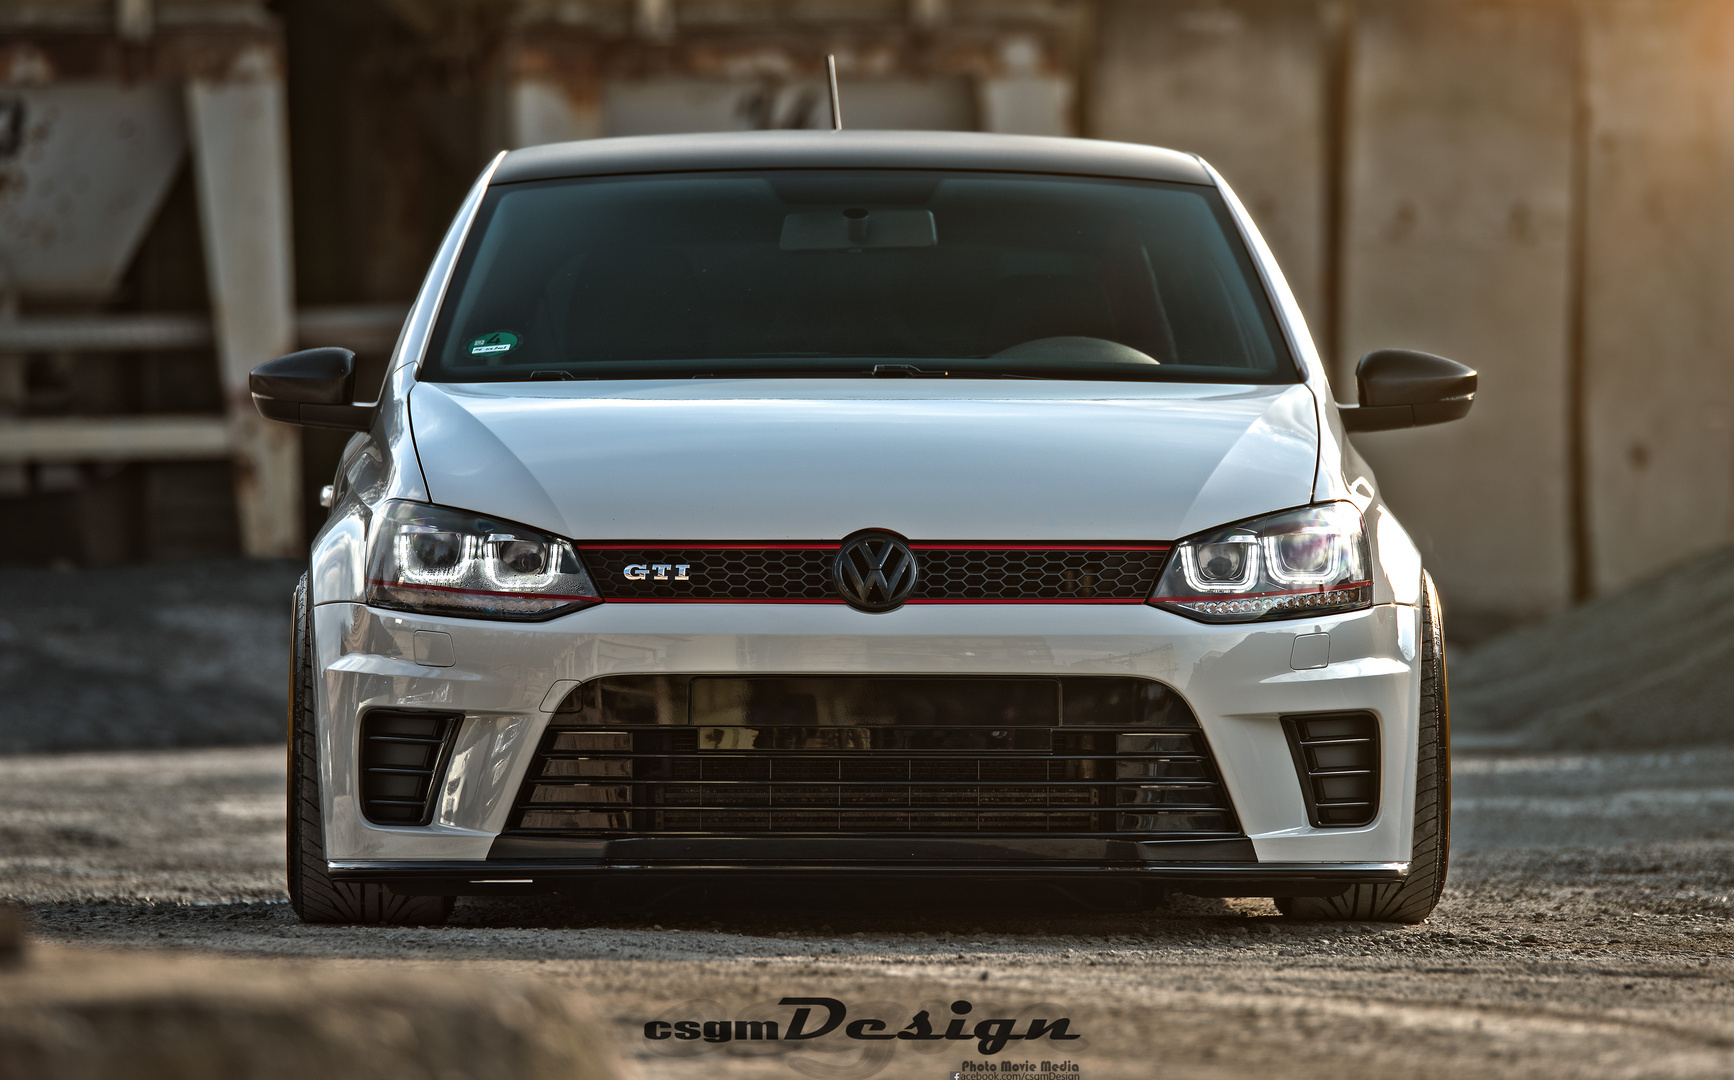 vw polo 6r foto bild auto tuning wrc bilder auf. Black Bedroom Furniture Sets. Home Design Ideas